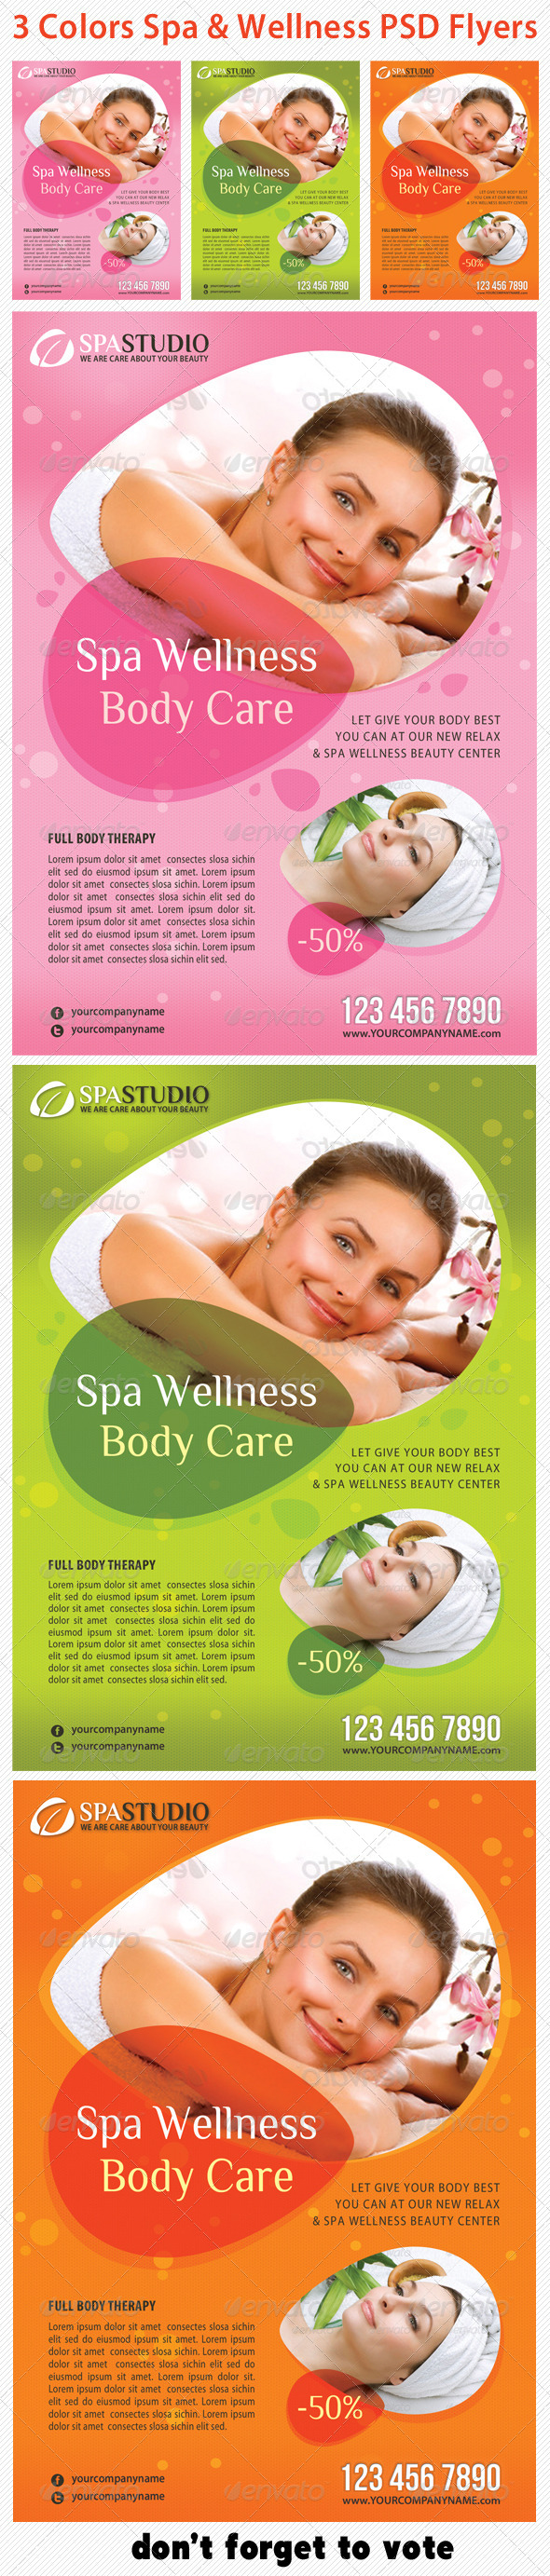 Spa Studio Flyer 16 - Corporate Flyers